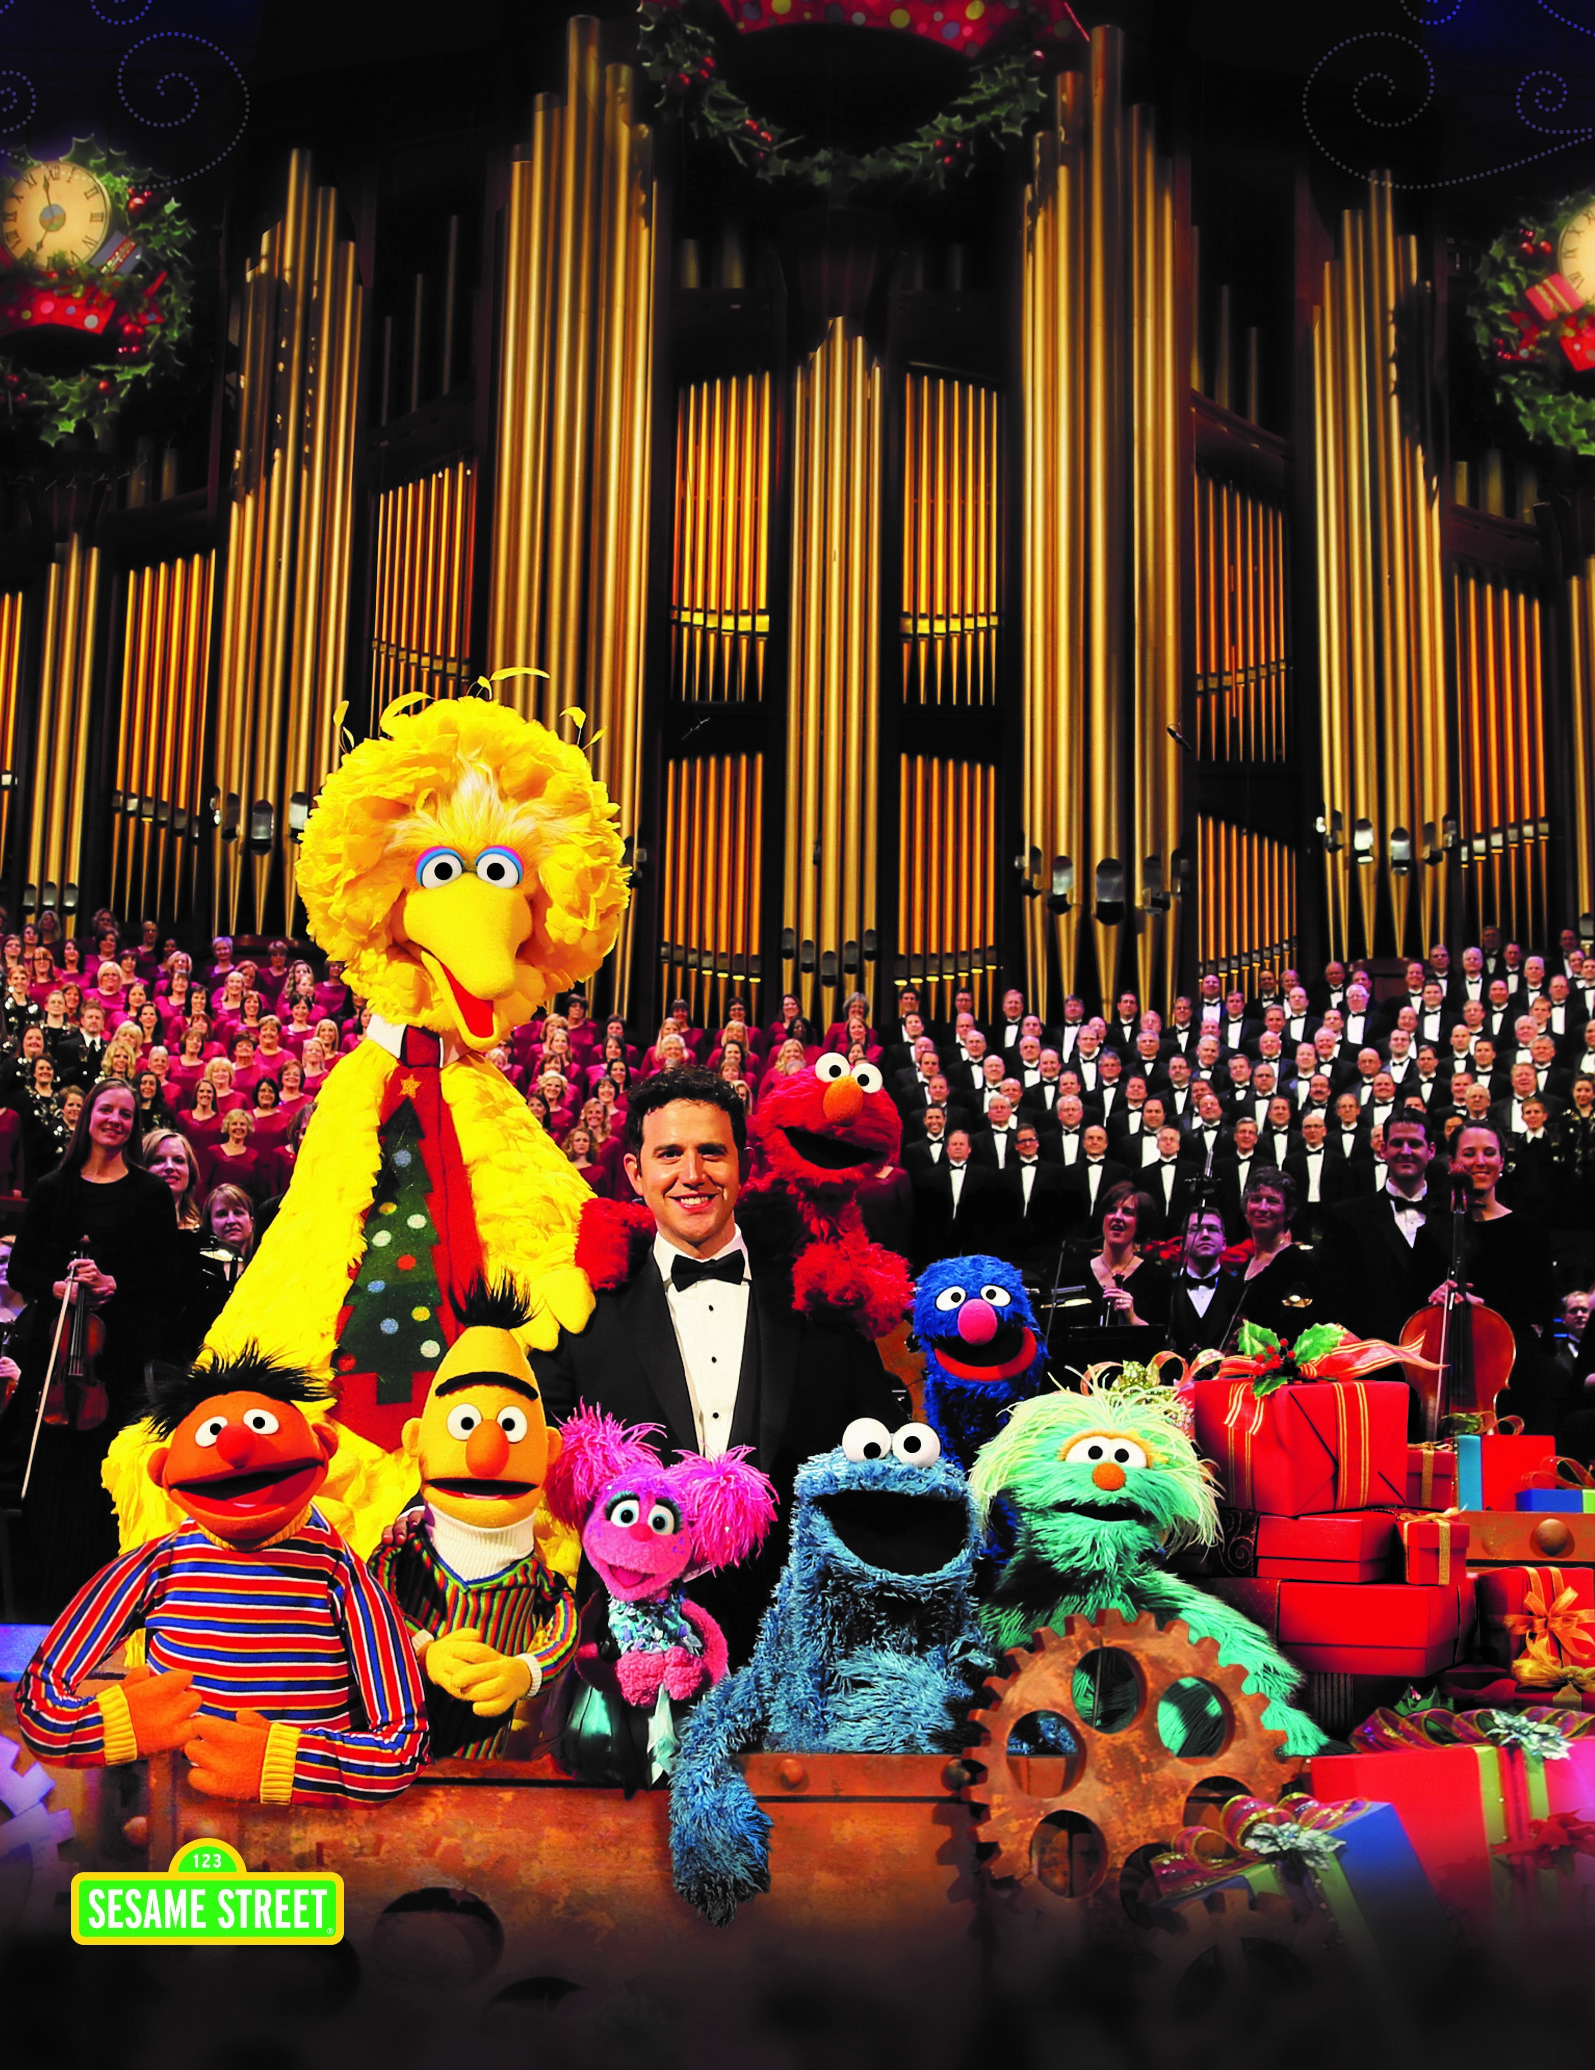 Image - Cmas with Choir Fontana and Muppets ex Count.jpg